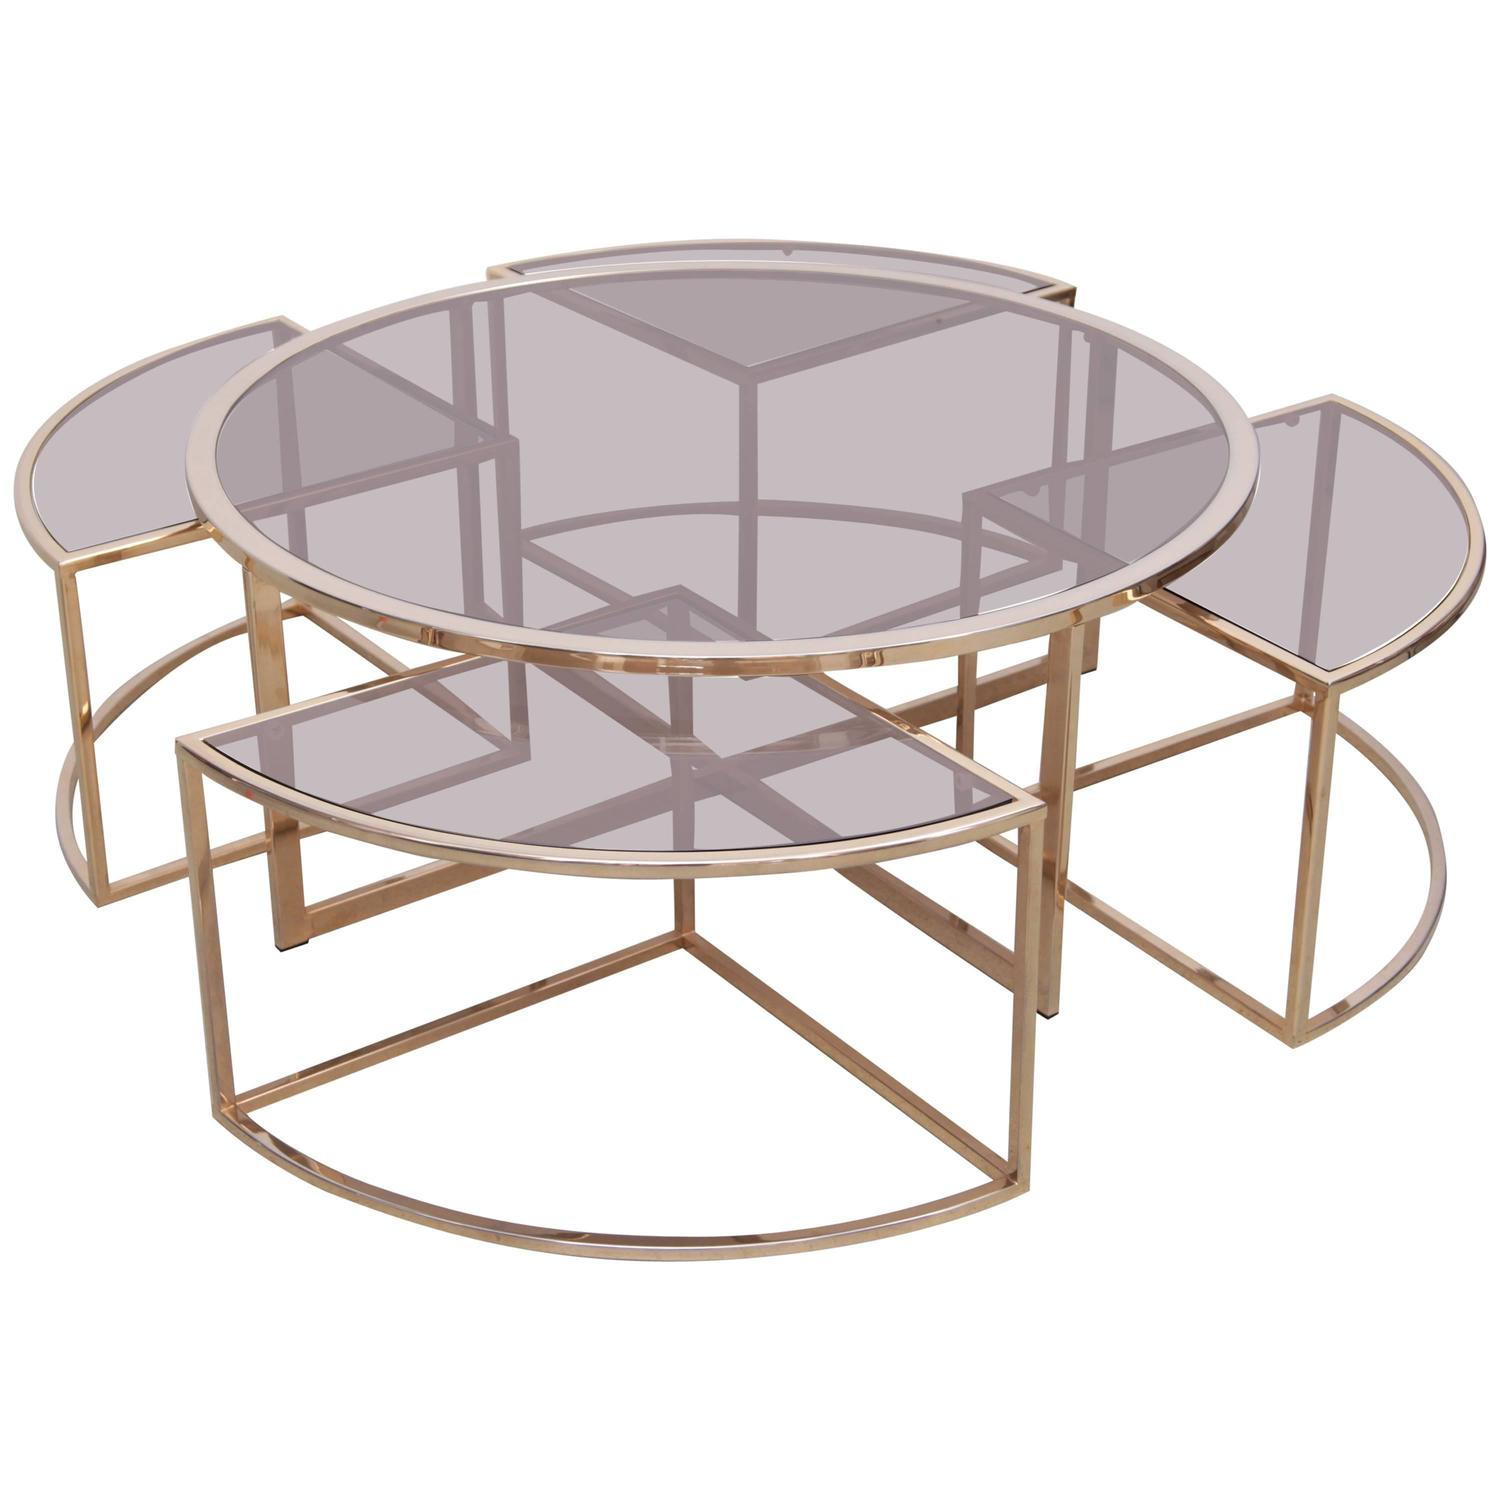 Round Brass Coffee Table With Four Nesting Tables By Maison Charles At 1stdibs